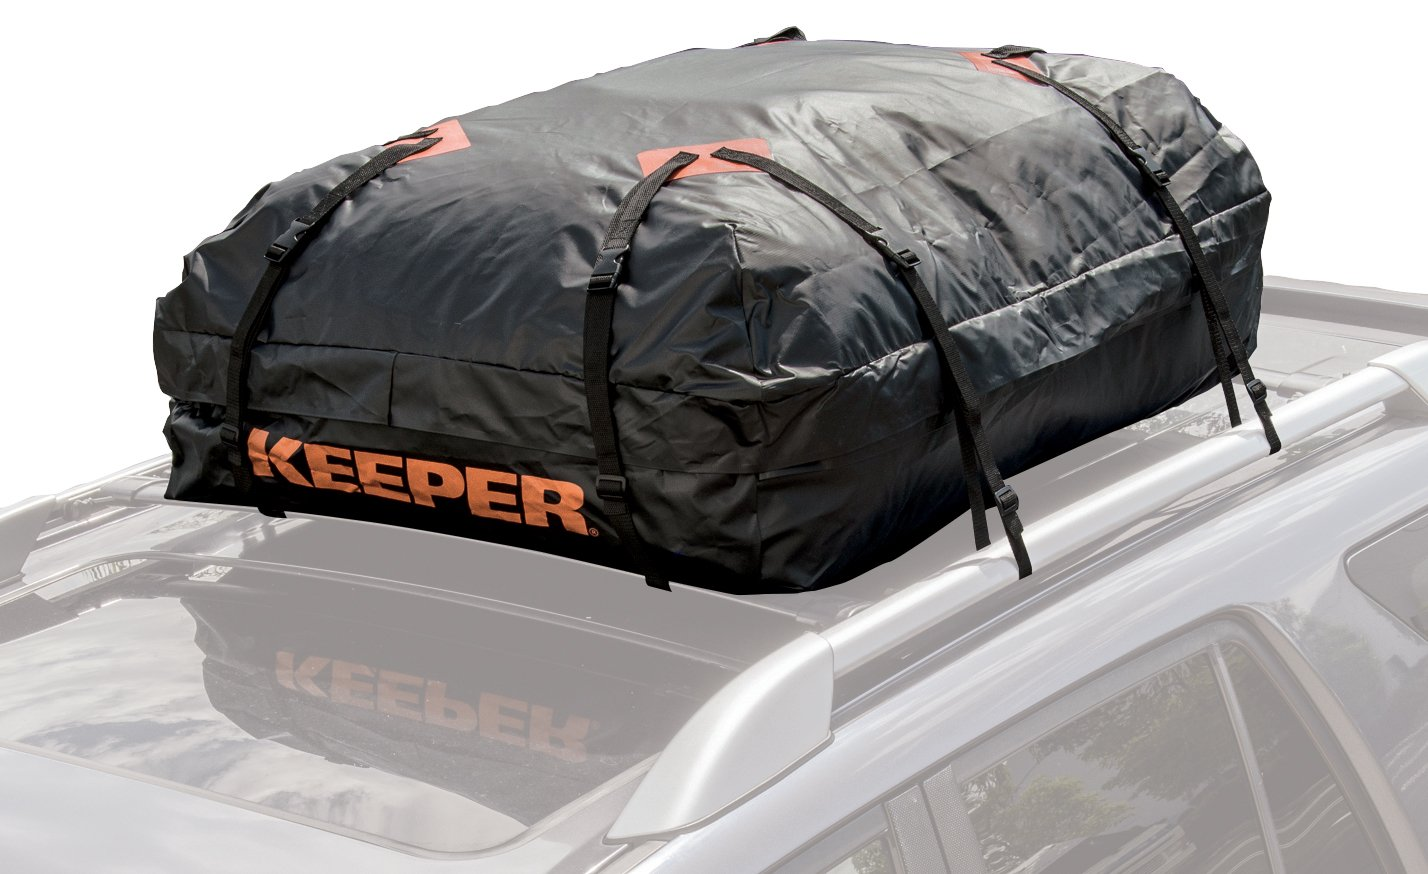 Amazon.com: Keeper 07203-1 Waterproof Roof Top Cargo Bag (15 Cubic ...